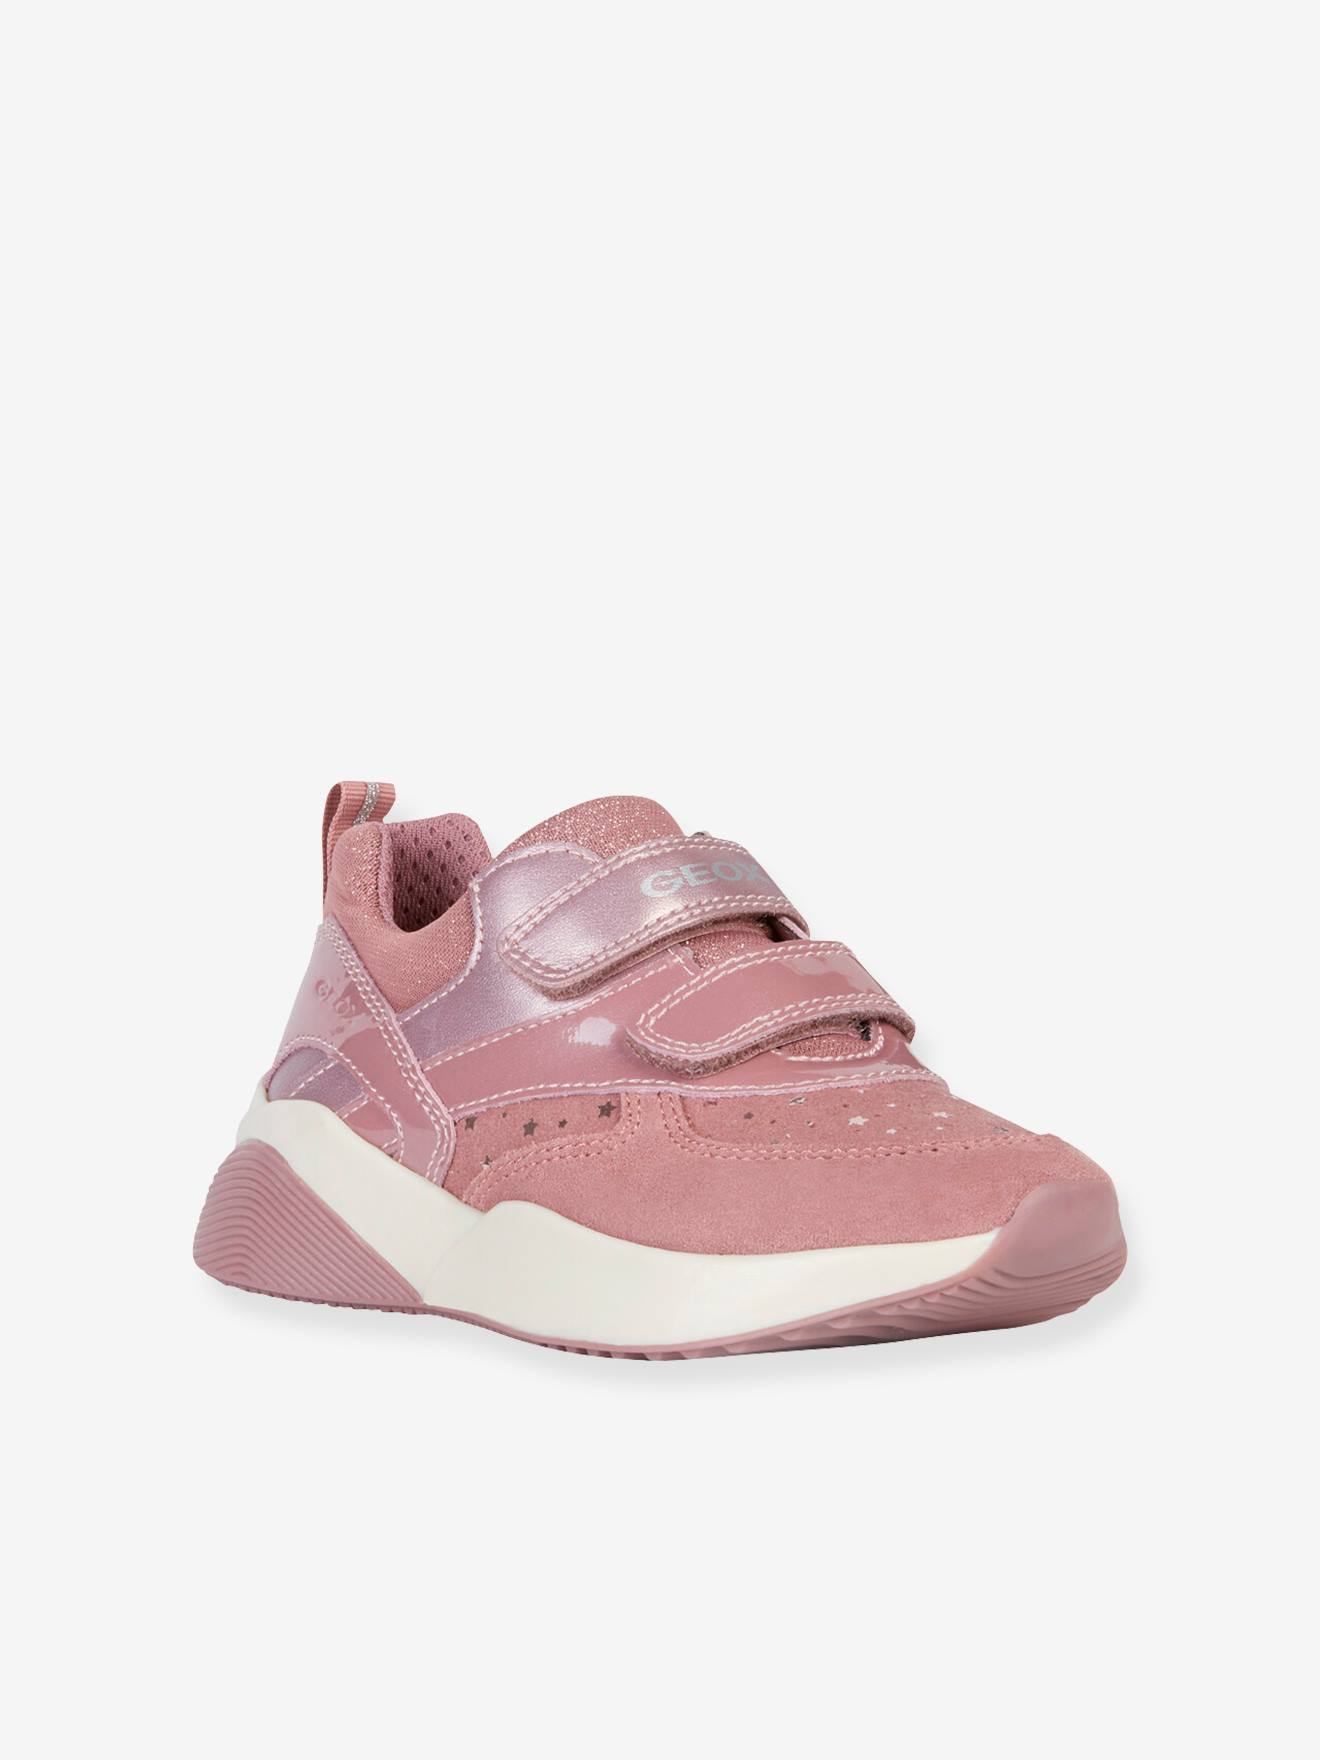 Details about GEOX Pink Shoes, UK 5 US 8 EU 38